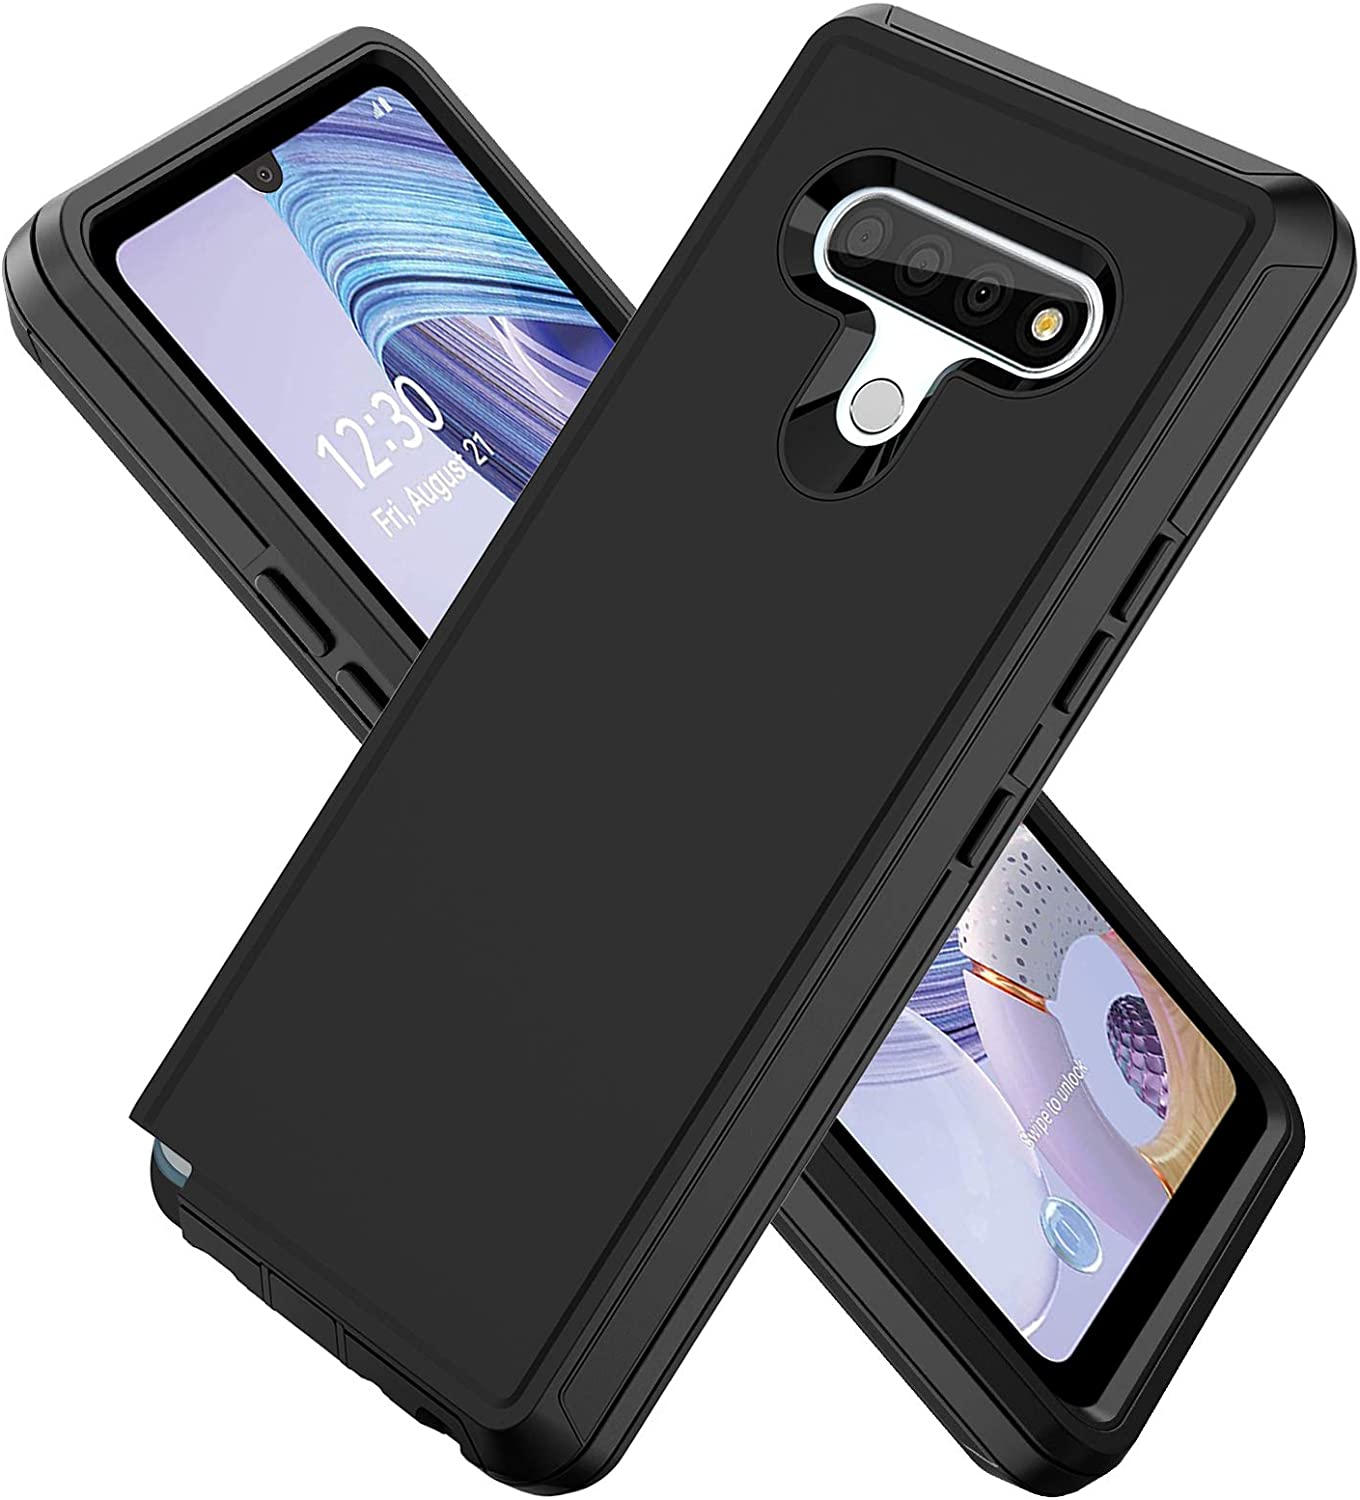 ACAGET for LG Stylo 6 Case Heavy Duty Protective Armor Shock-Absorbing Dual Layer Rubber TPU + PC Cover with Anti-Dust Plug Non-Slip Shell Bumper Phone Cases for LG Stylo 6 Black